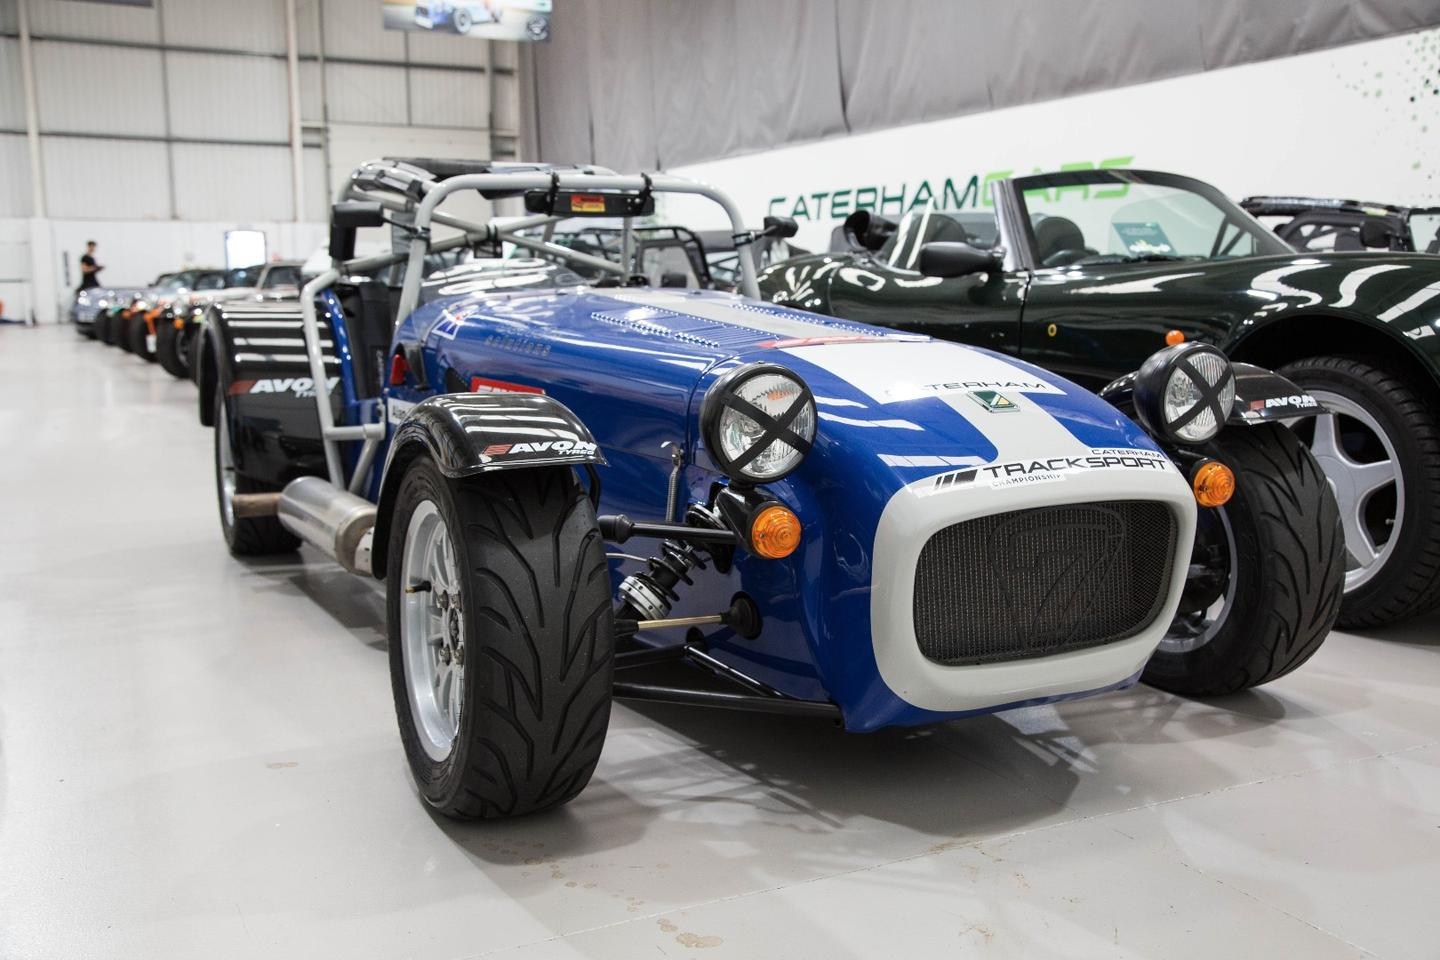 Caterham has created a motorsports ladder, where average joes are able to race alongside people of similar ability